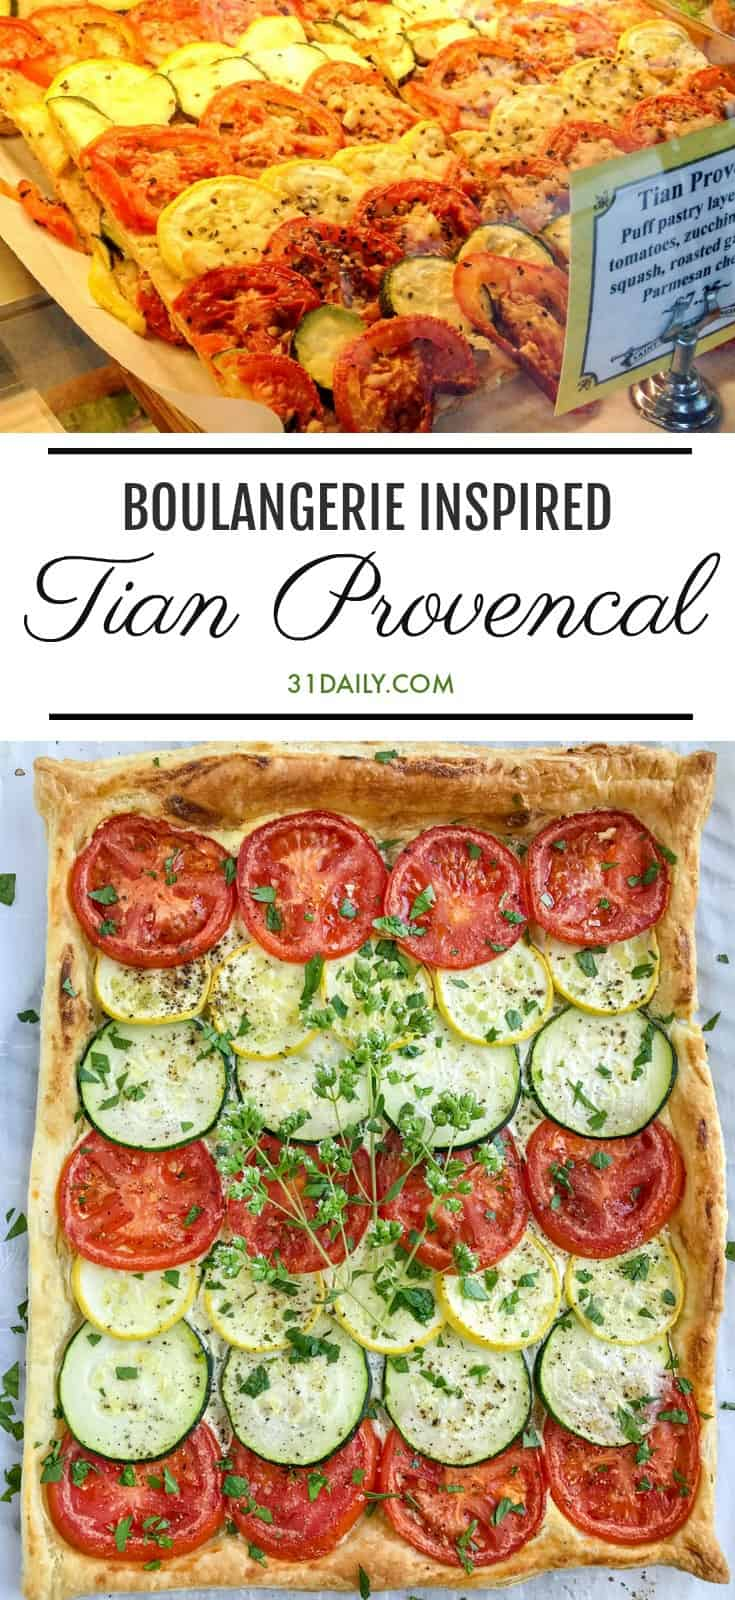 Classically French Tian Provencal | 31Daily.com